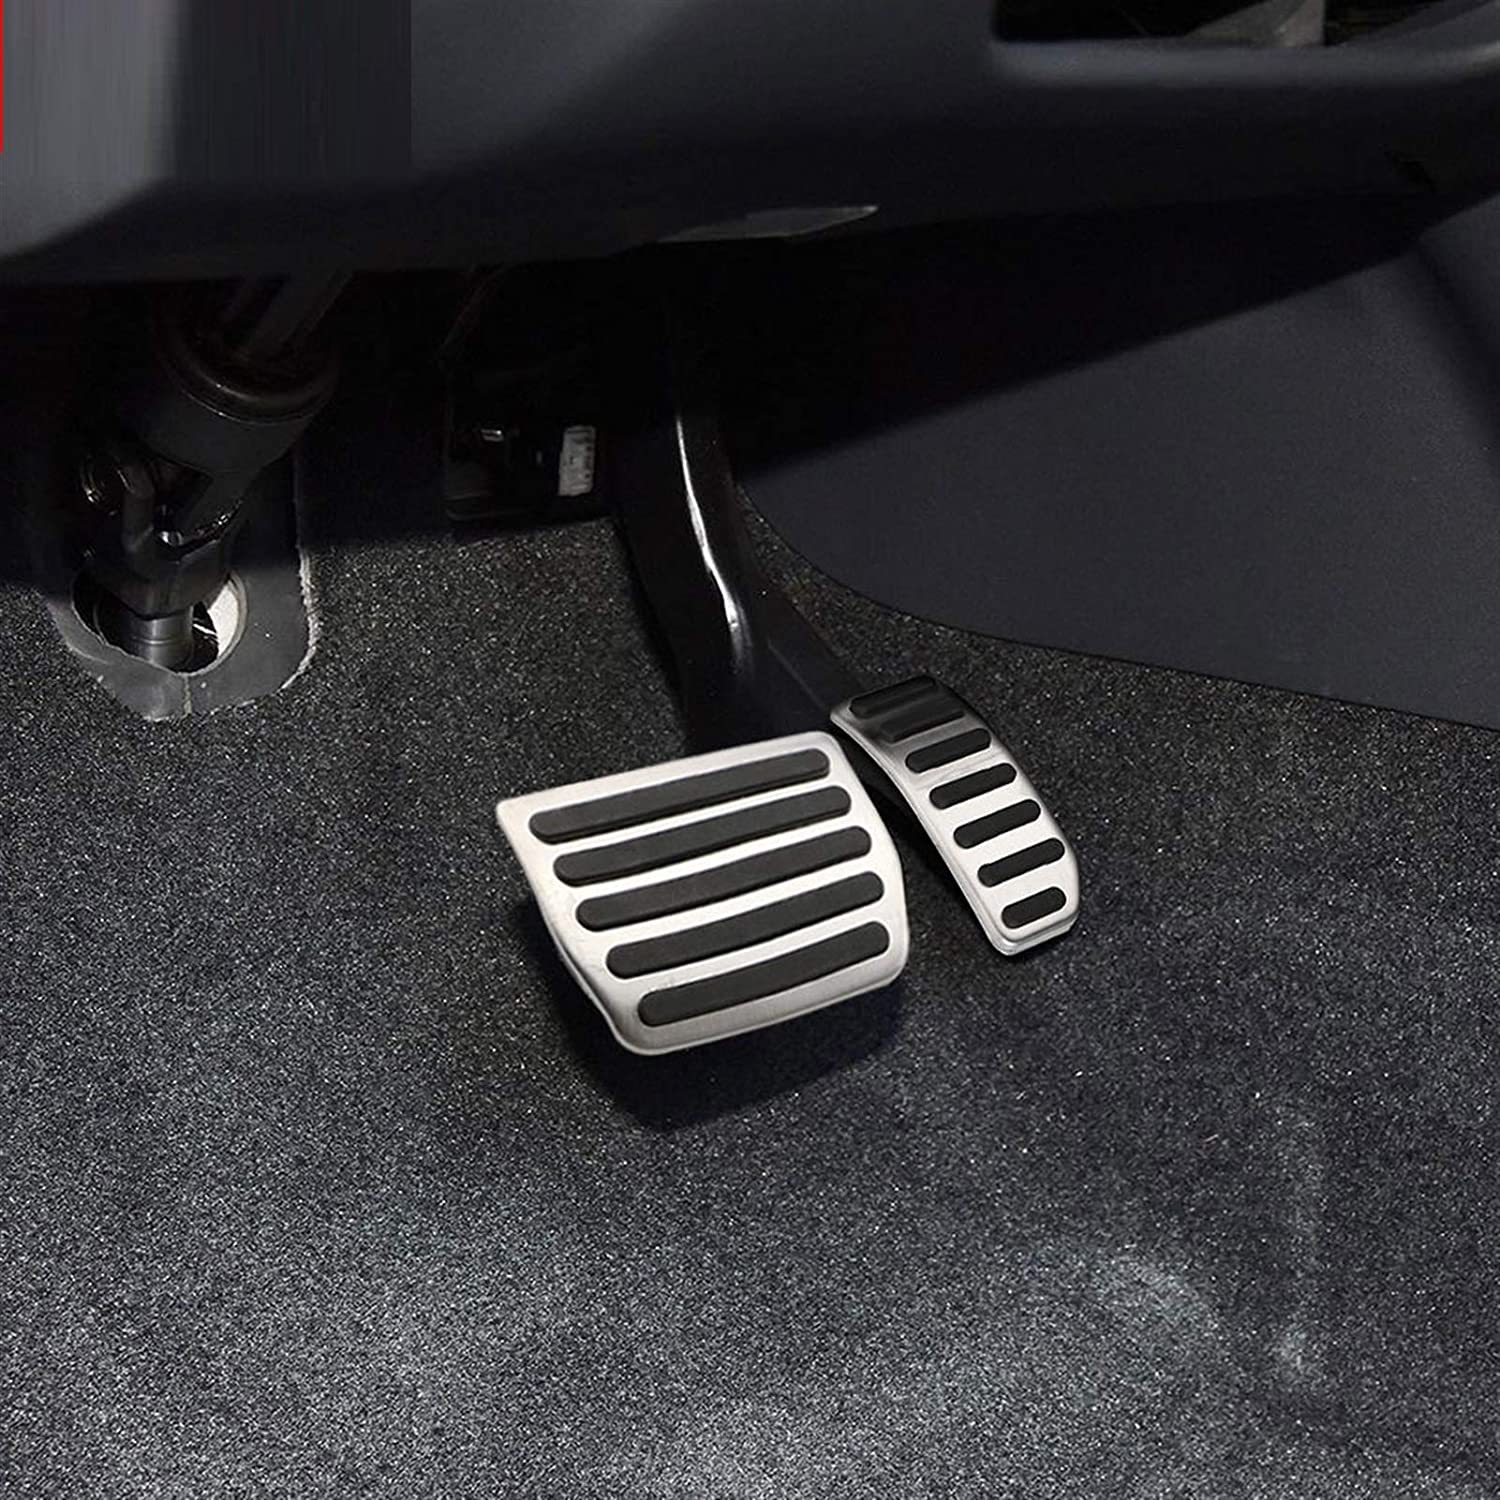 lovely Performance Aluminum Accelerator /& Brake Pedal Covers,Car Stainless Steel AT MT Gas Pedal Brake Pedals Fit for Volvo XC60 XC70 V60 V70 S40 S60 S80L C30 Hjiaqi Color Name : MT